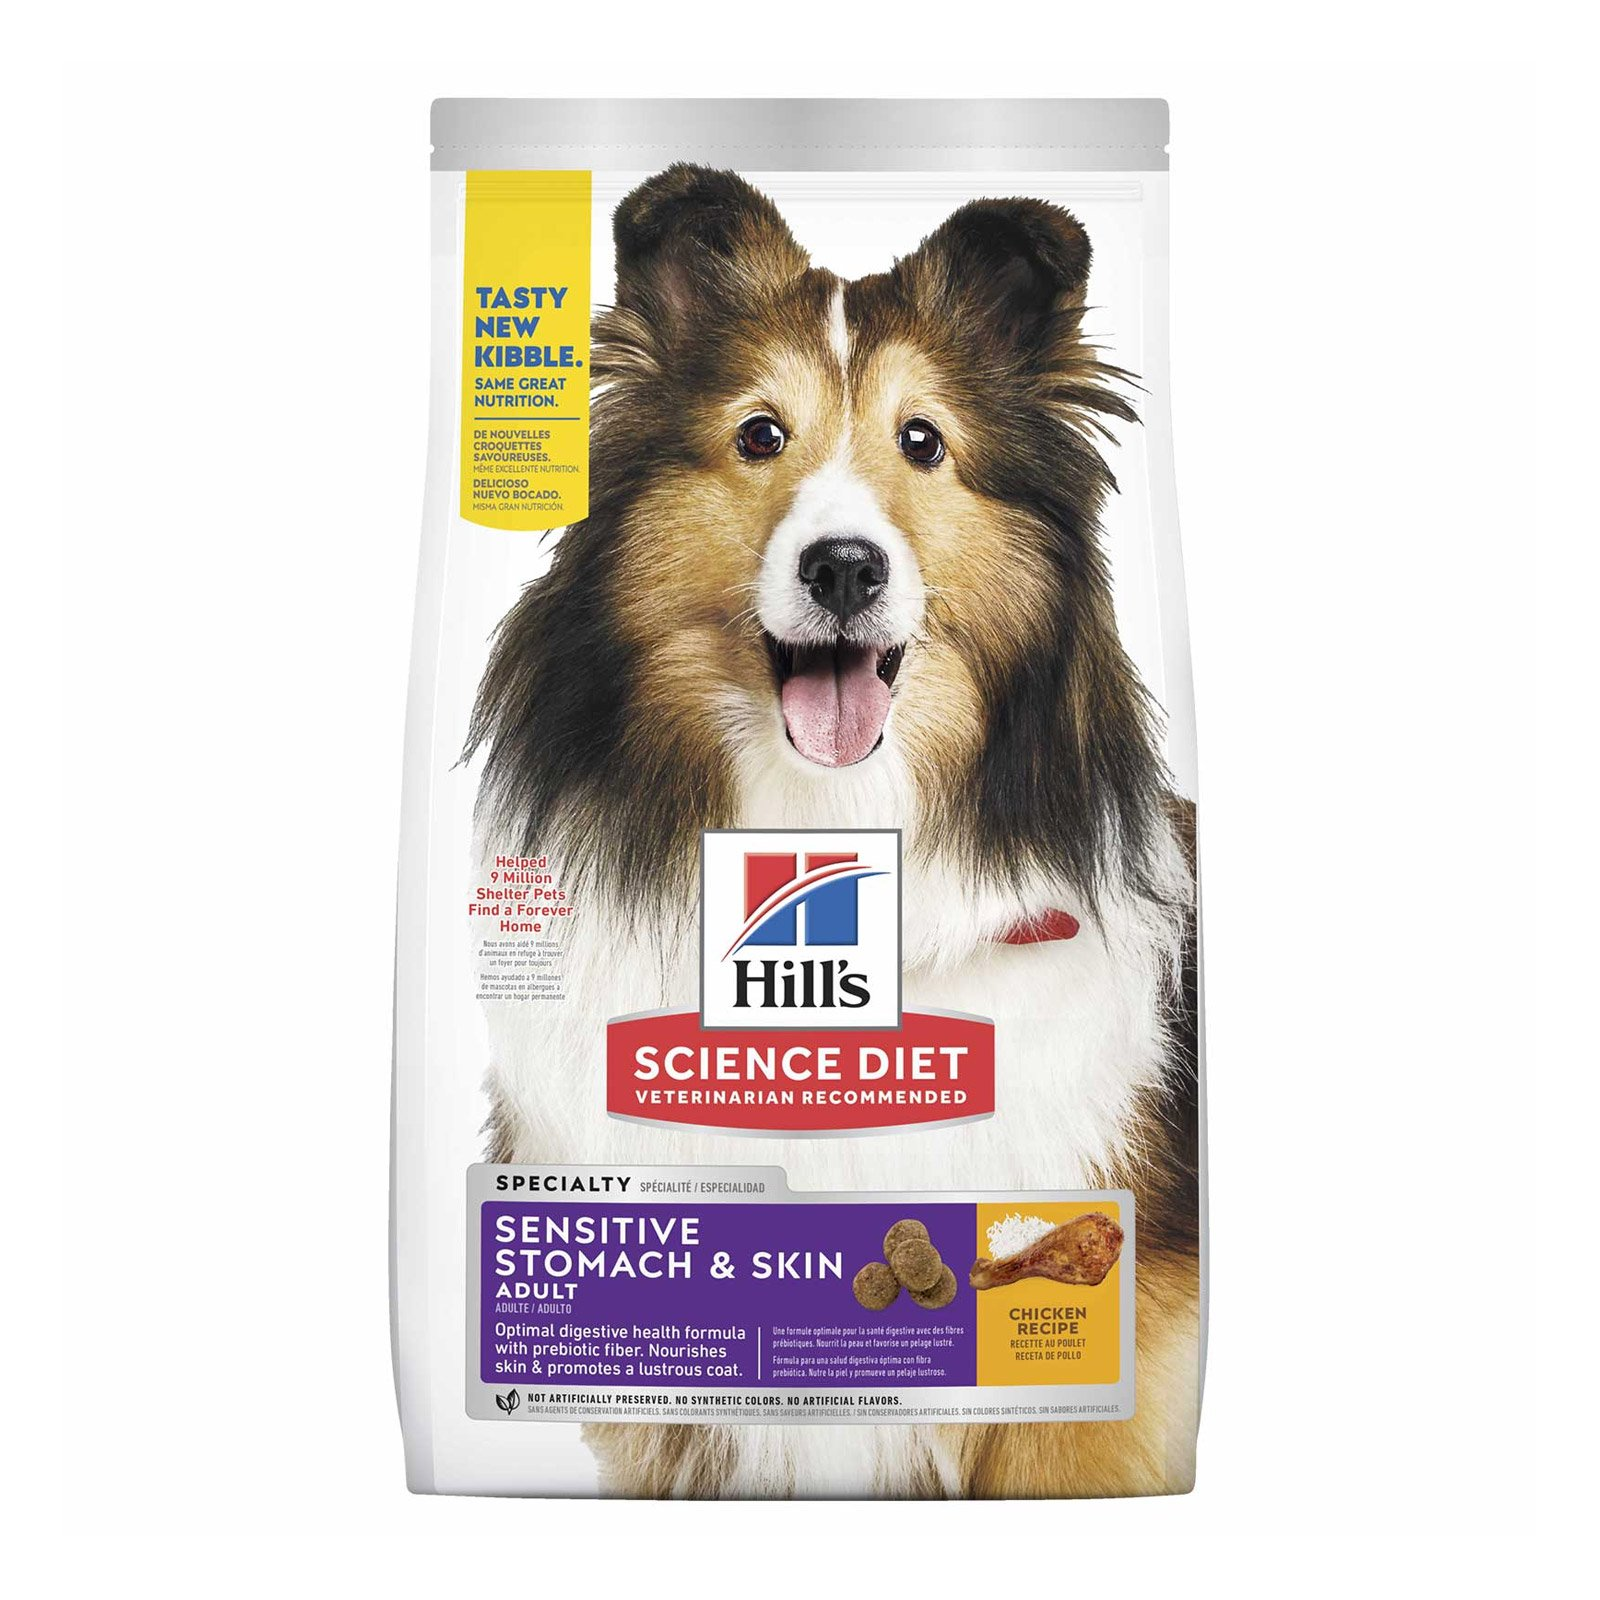 Hill's Science Diet Adult Sensitive Stomach & Skin Chicken Dry Dog Food